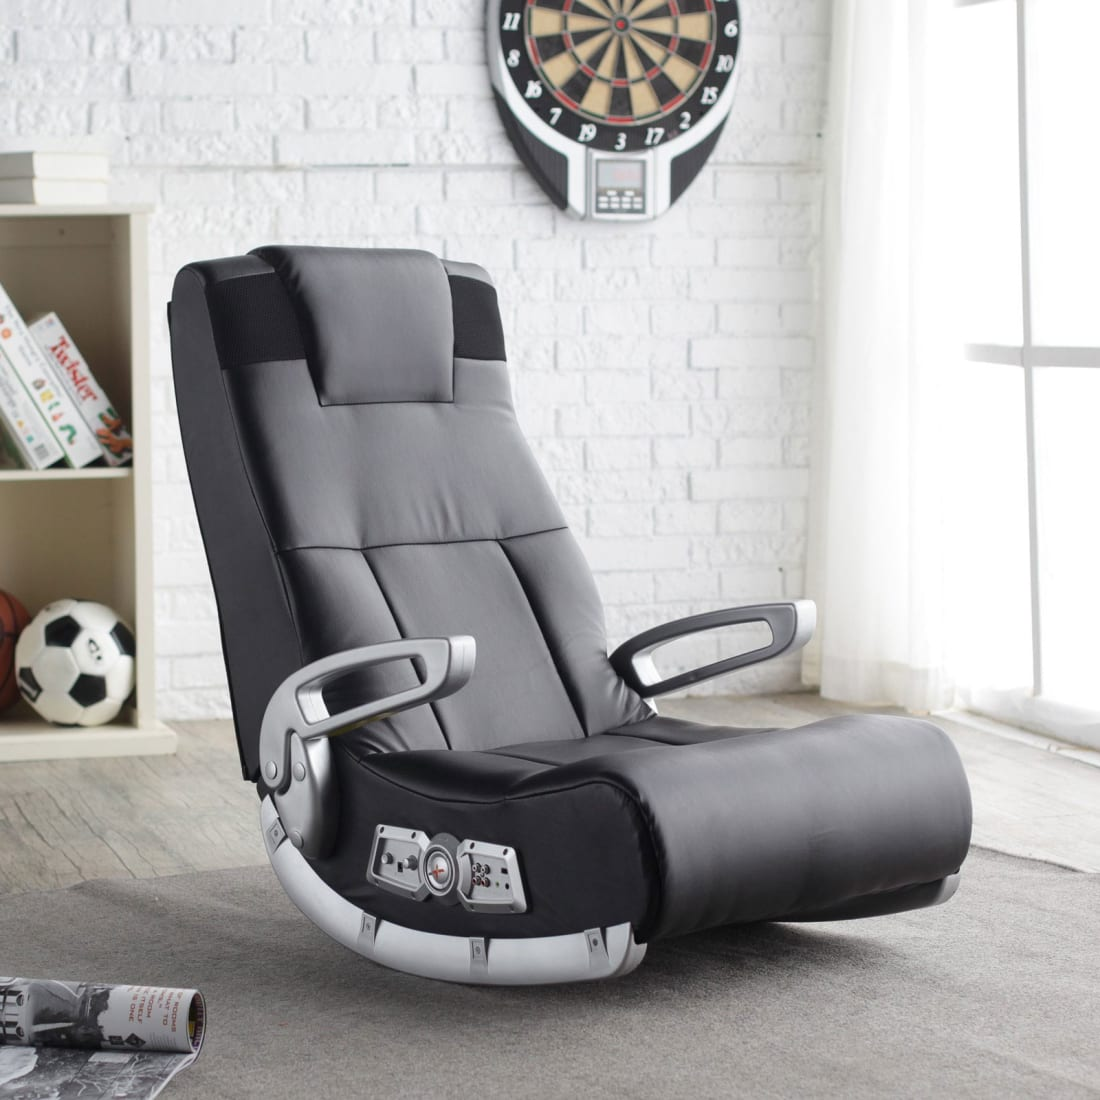 The Best Of When It Comes To Finding Your New More Comfortable Gaming Throne